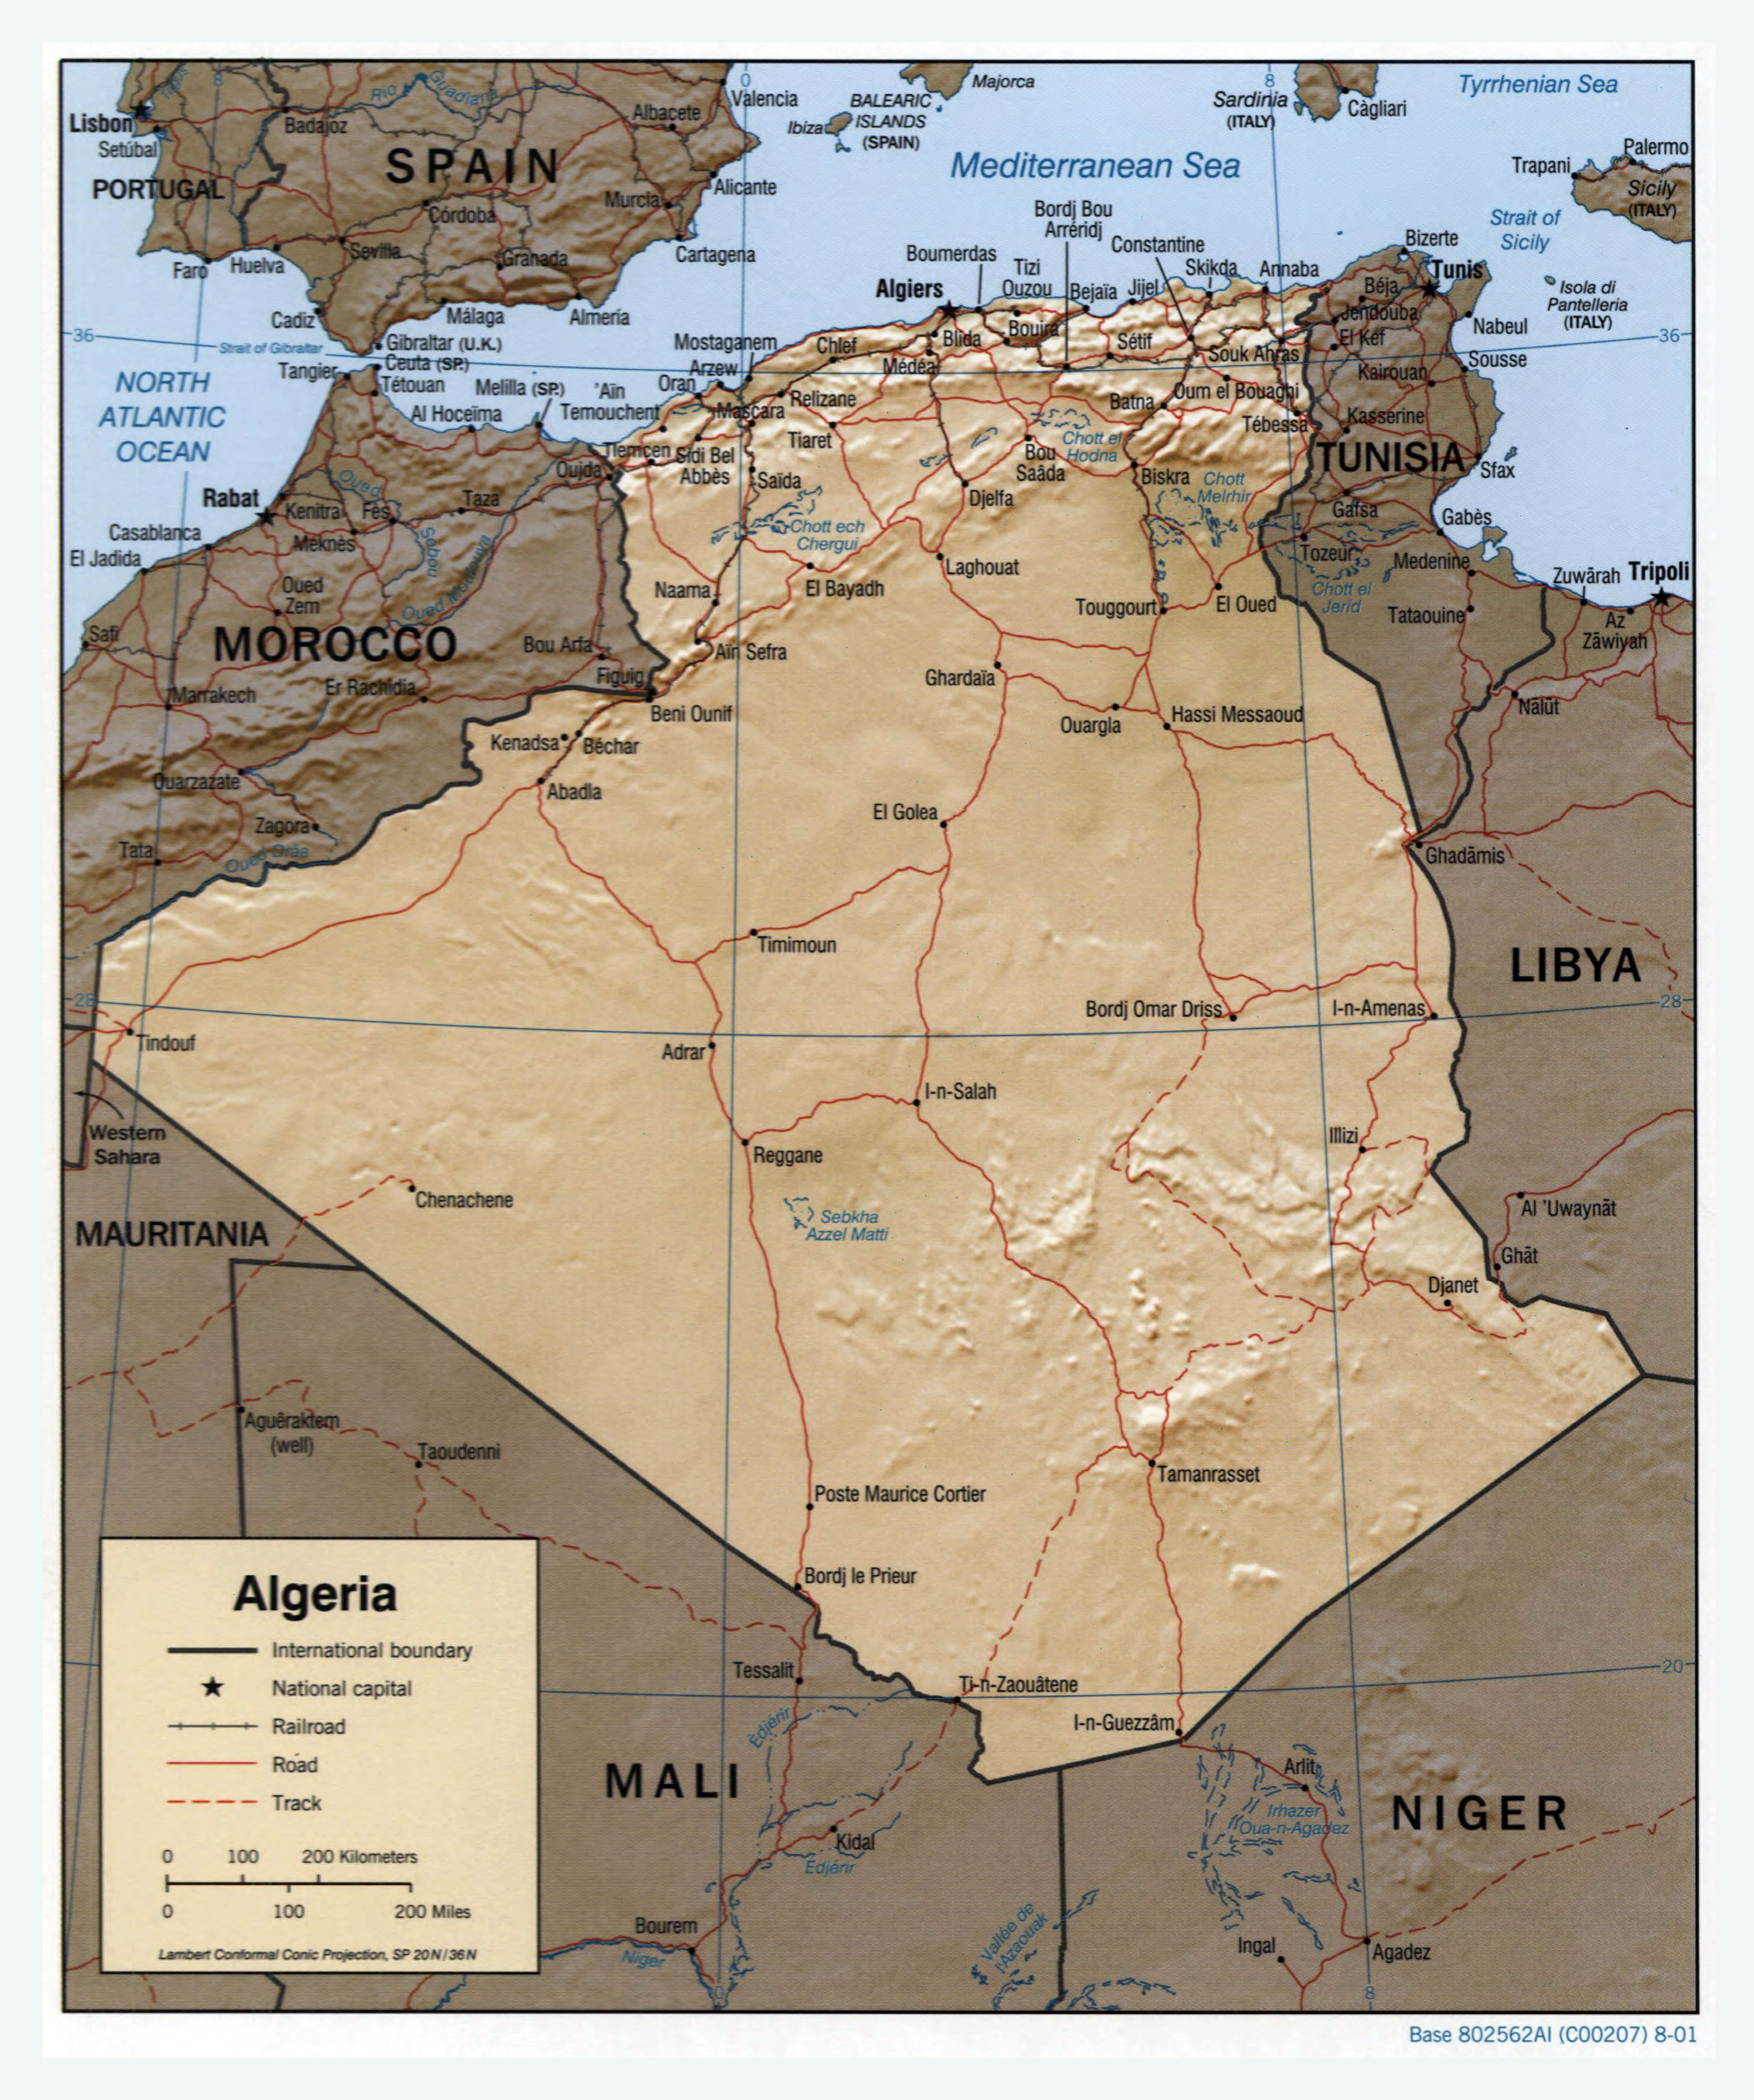 Large Scale Political Map Of Algeria With Relief Roads Railroads - Cities map of algeria